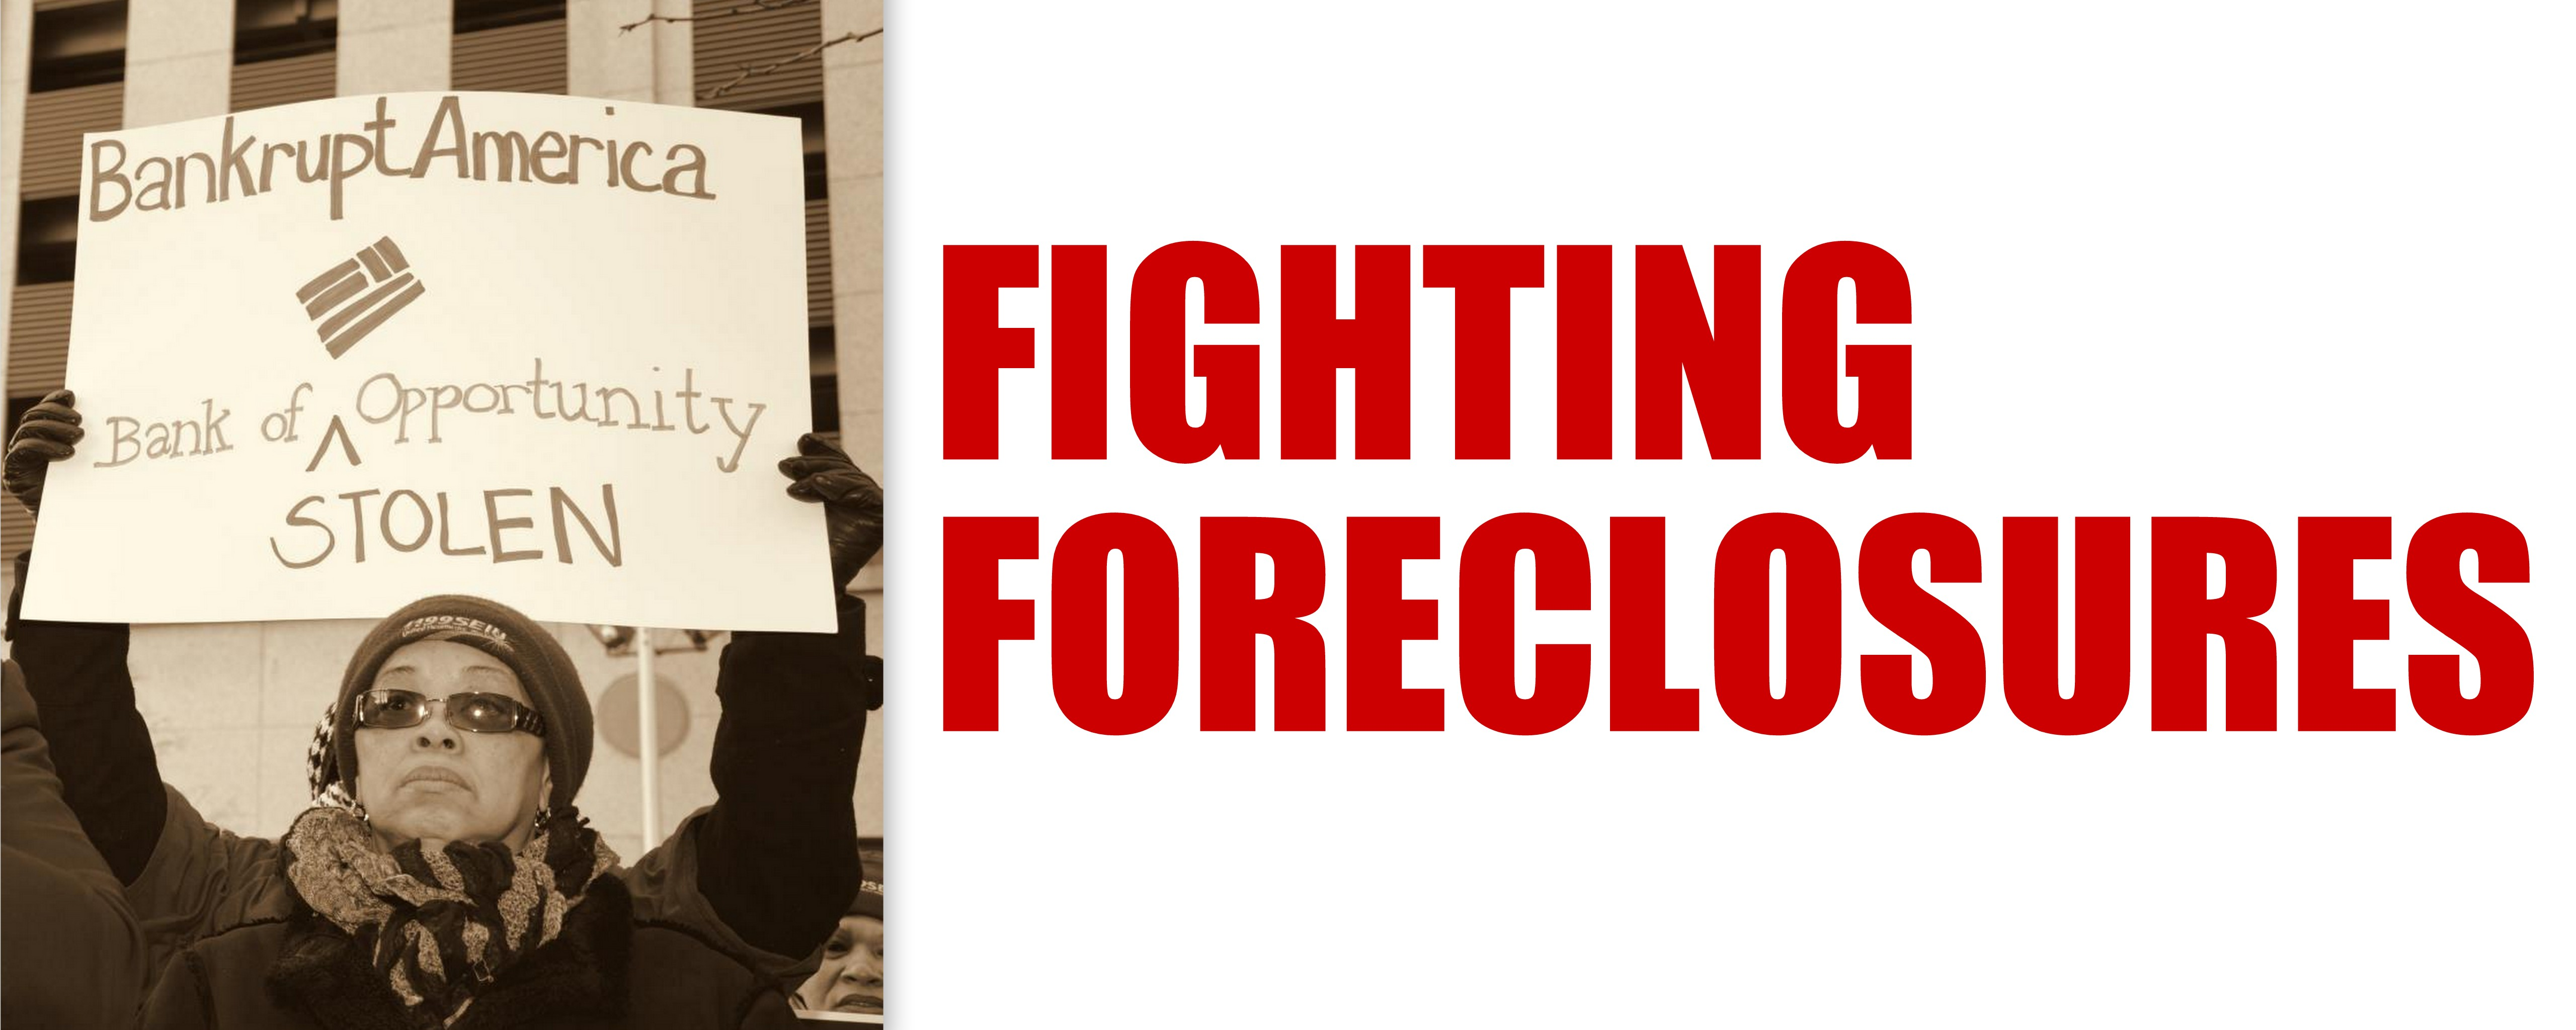 FIGHTING_FORECLOSURES.jpg